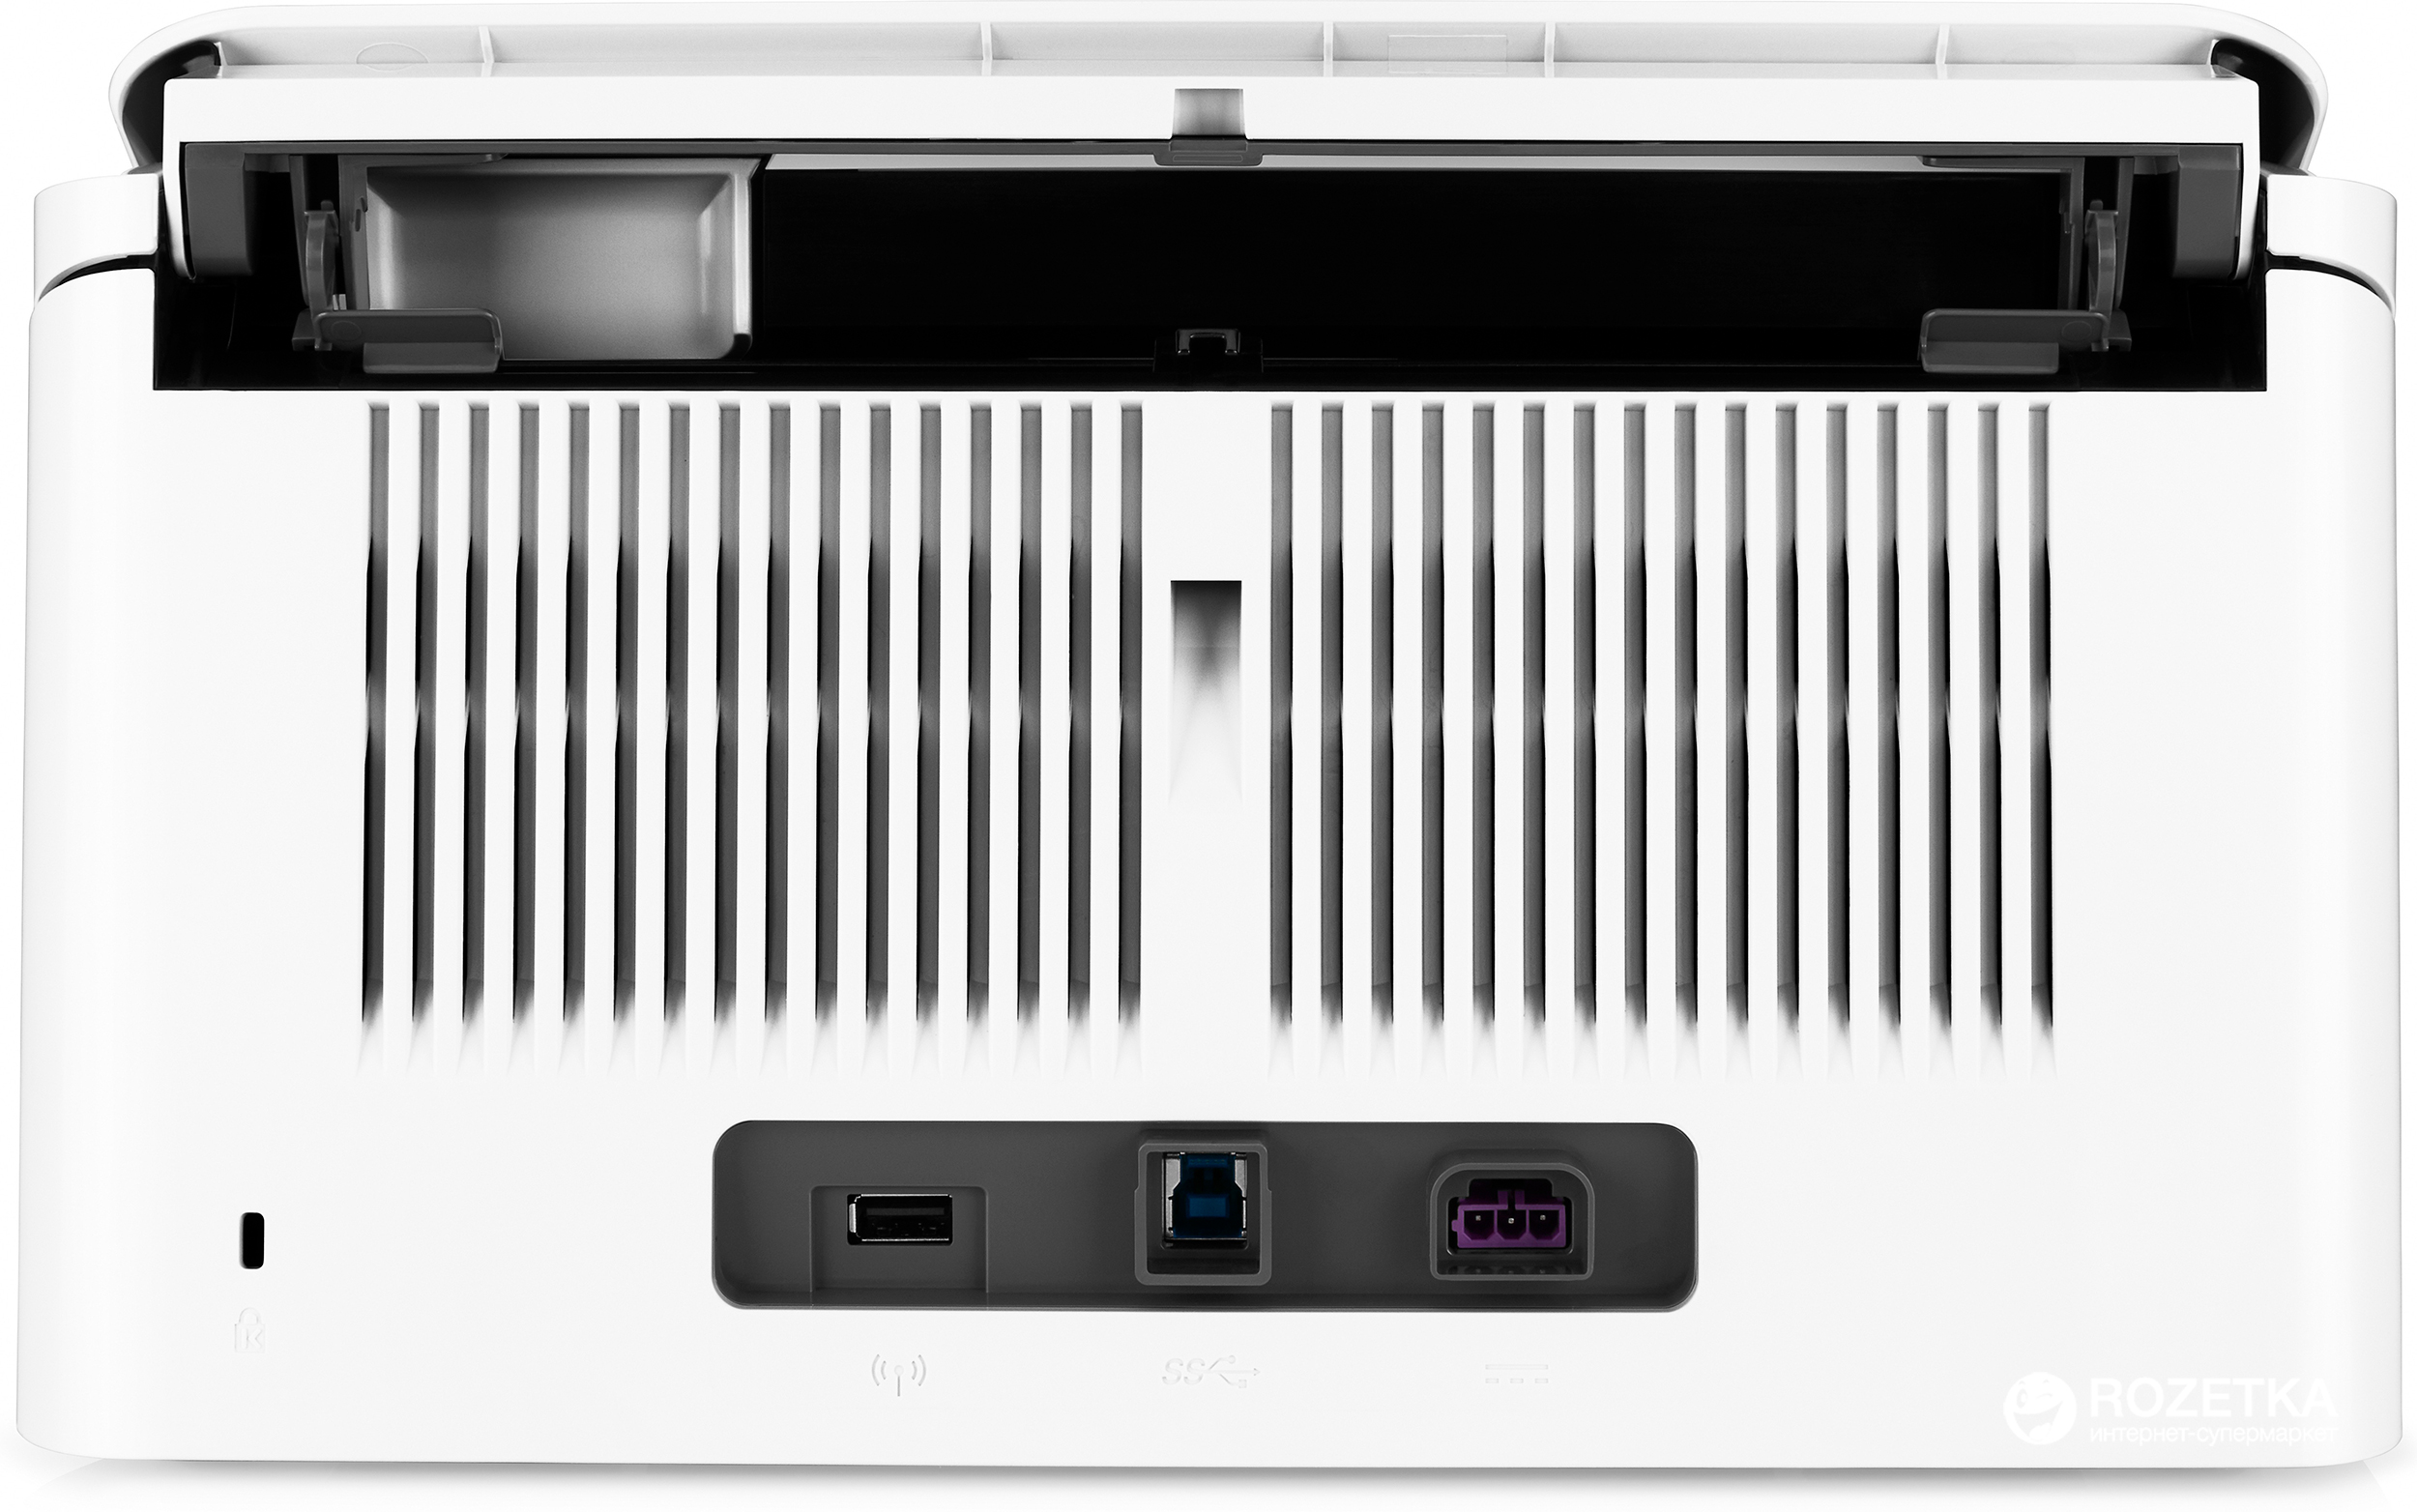 HP SCANJET PROFESSIONAL 3000 WINDOWS 8 X64 DRIVER DOWNLOAD